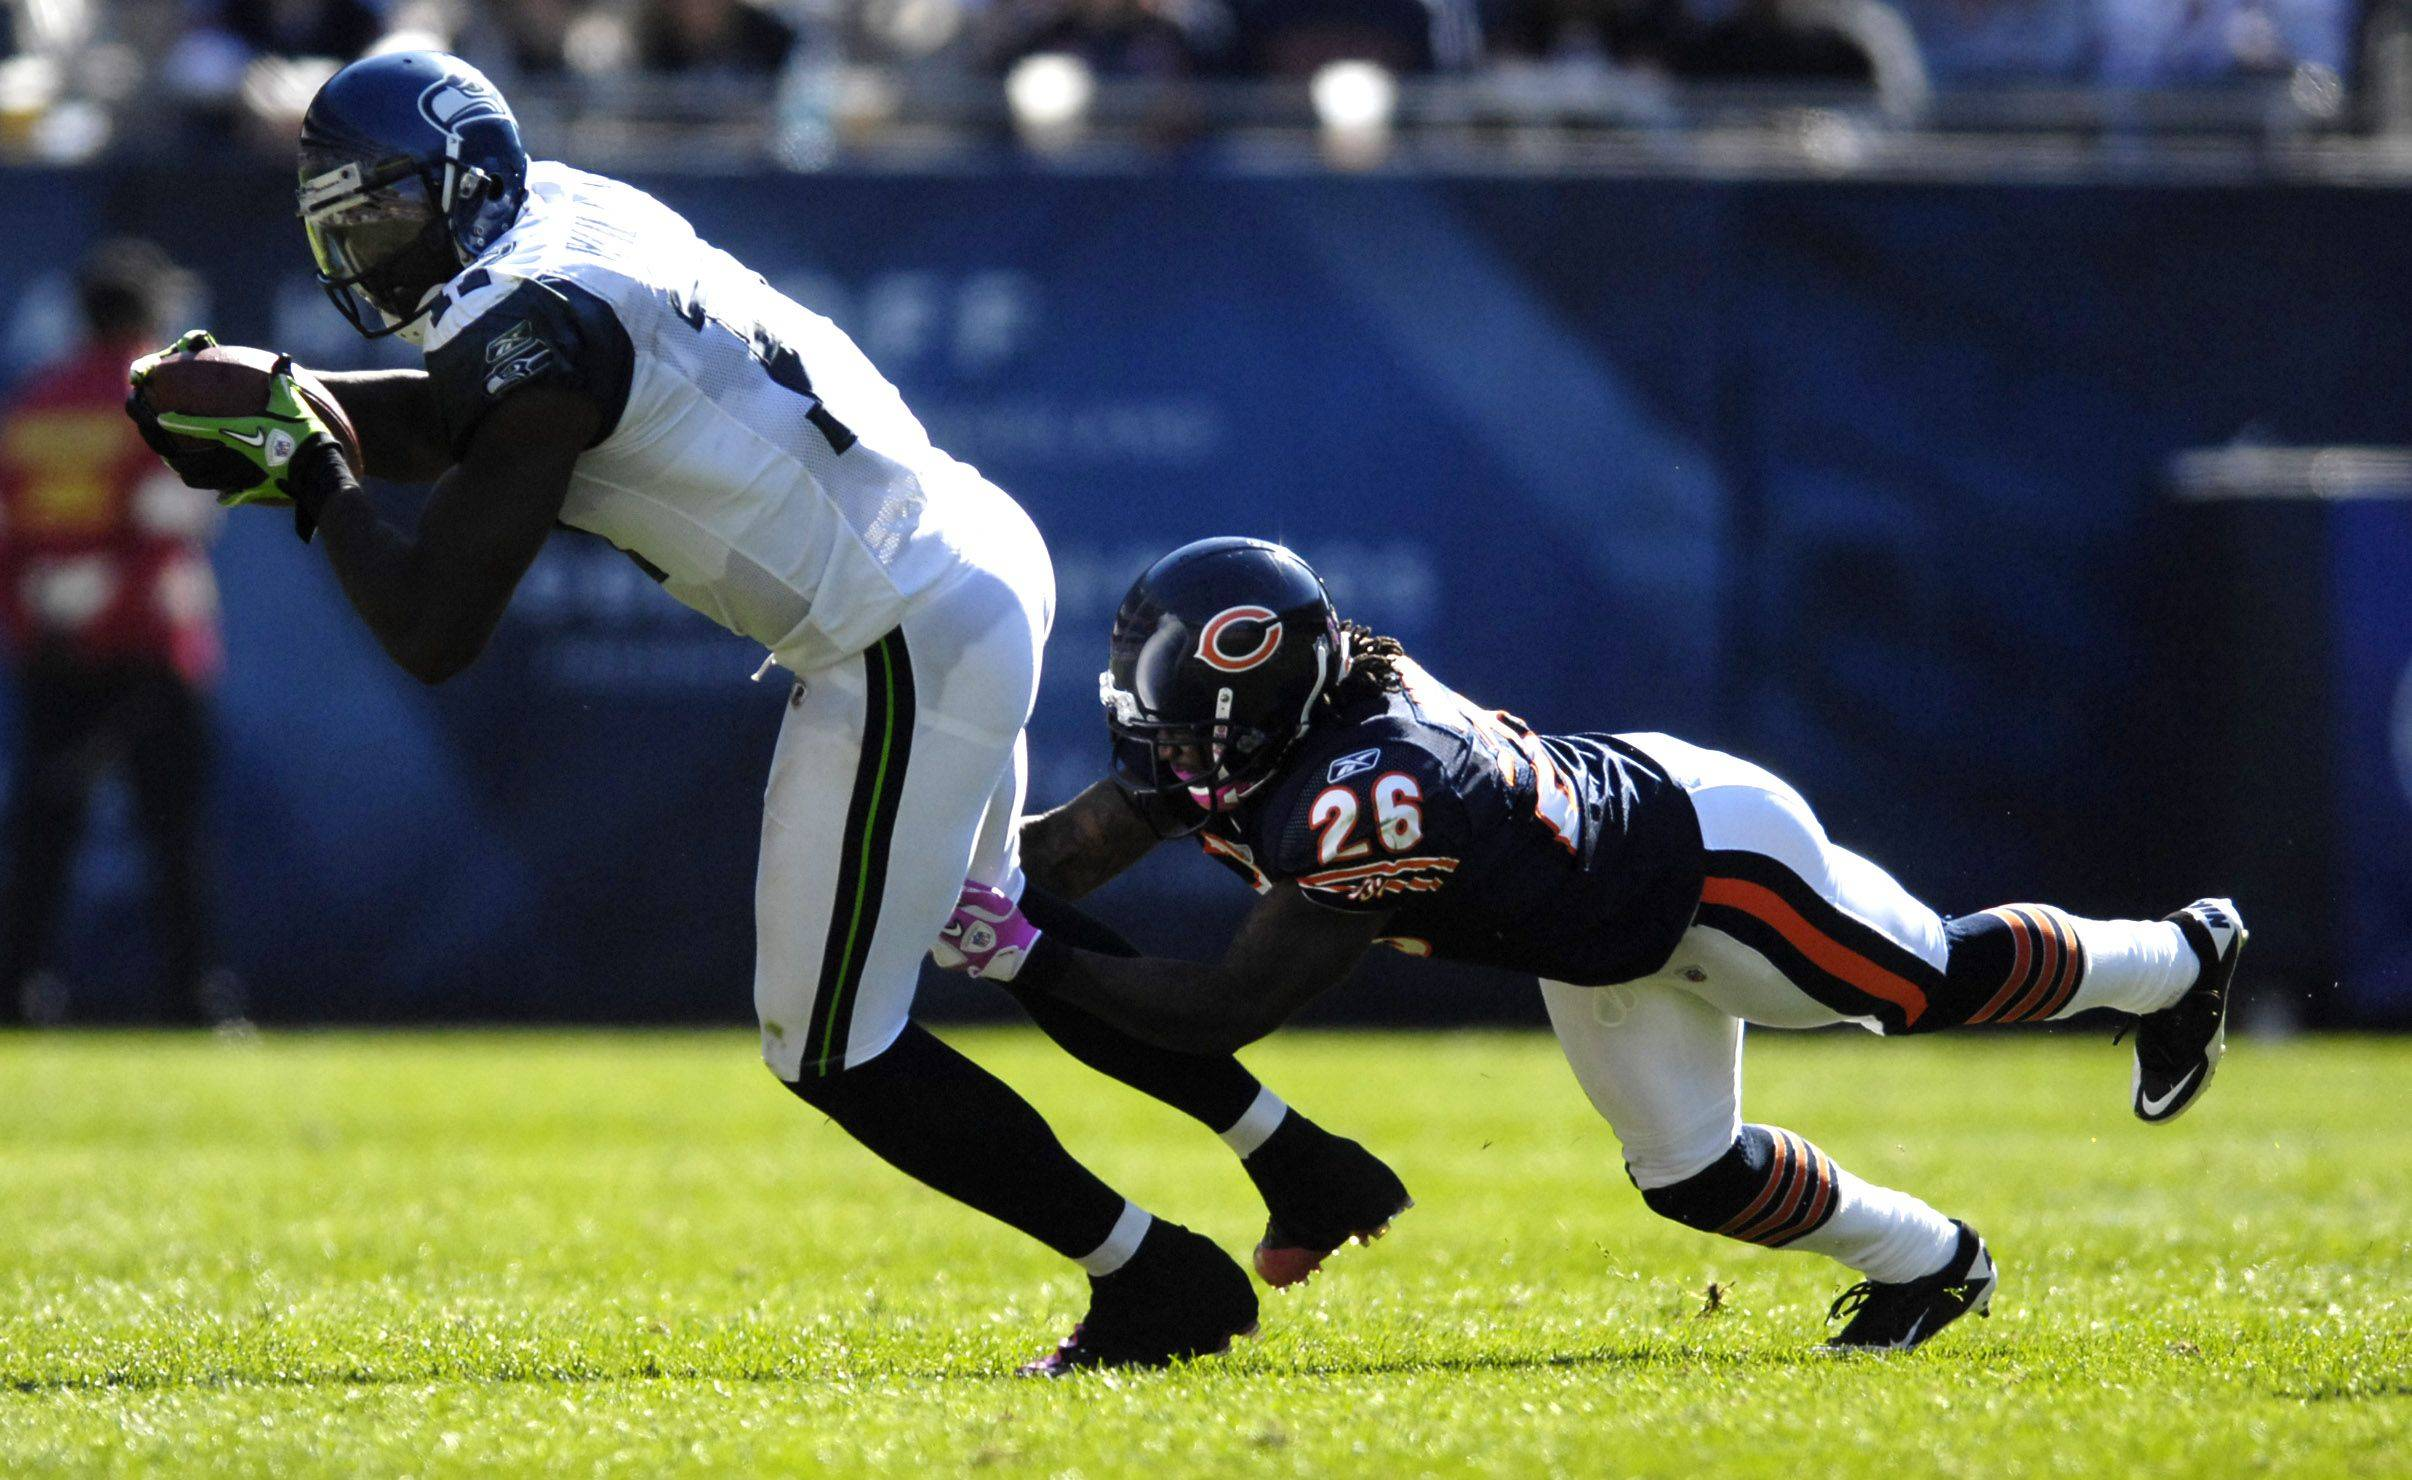 Seattle Seahawks wide receiver Mike Williams is tackled by Chicago Bears cornerback Tim Jennings during Sunday's game at Soldier Field in Chicago.